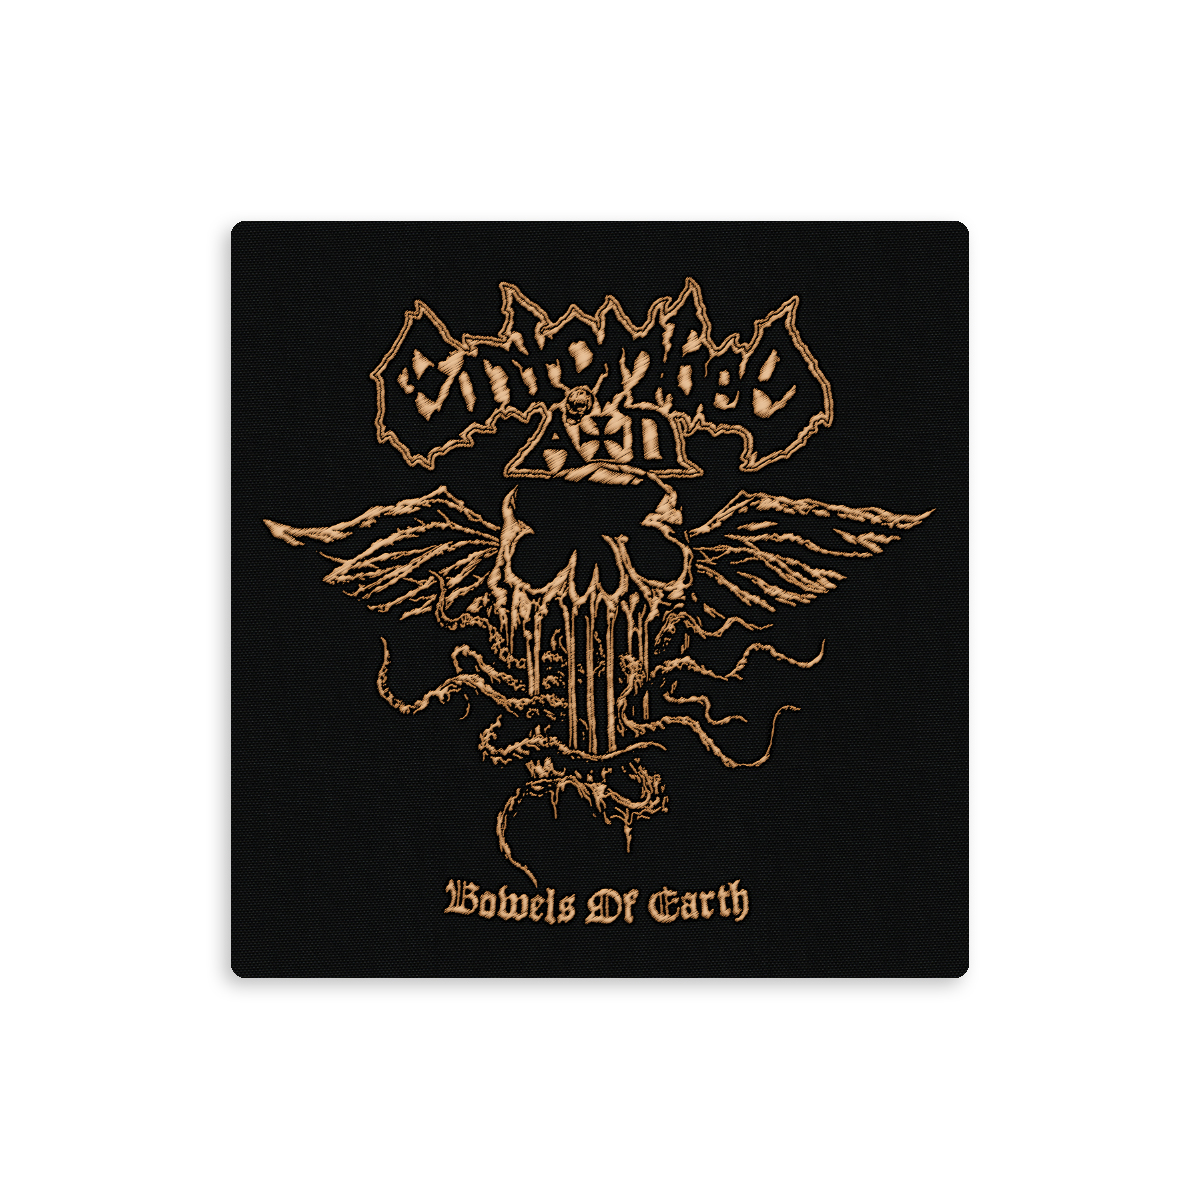 Entombed A.D. - Bowels of Earth Limited Edition CD Jewel Case with Patch + Fit For A King T-Shirt